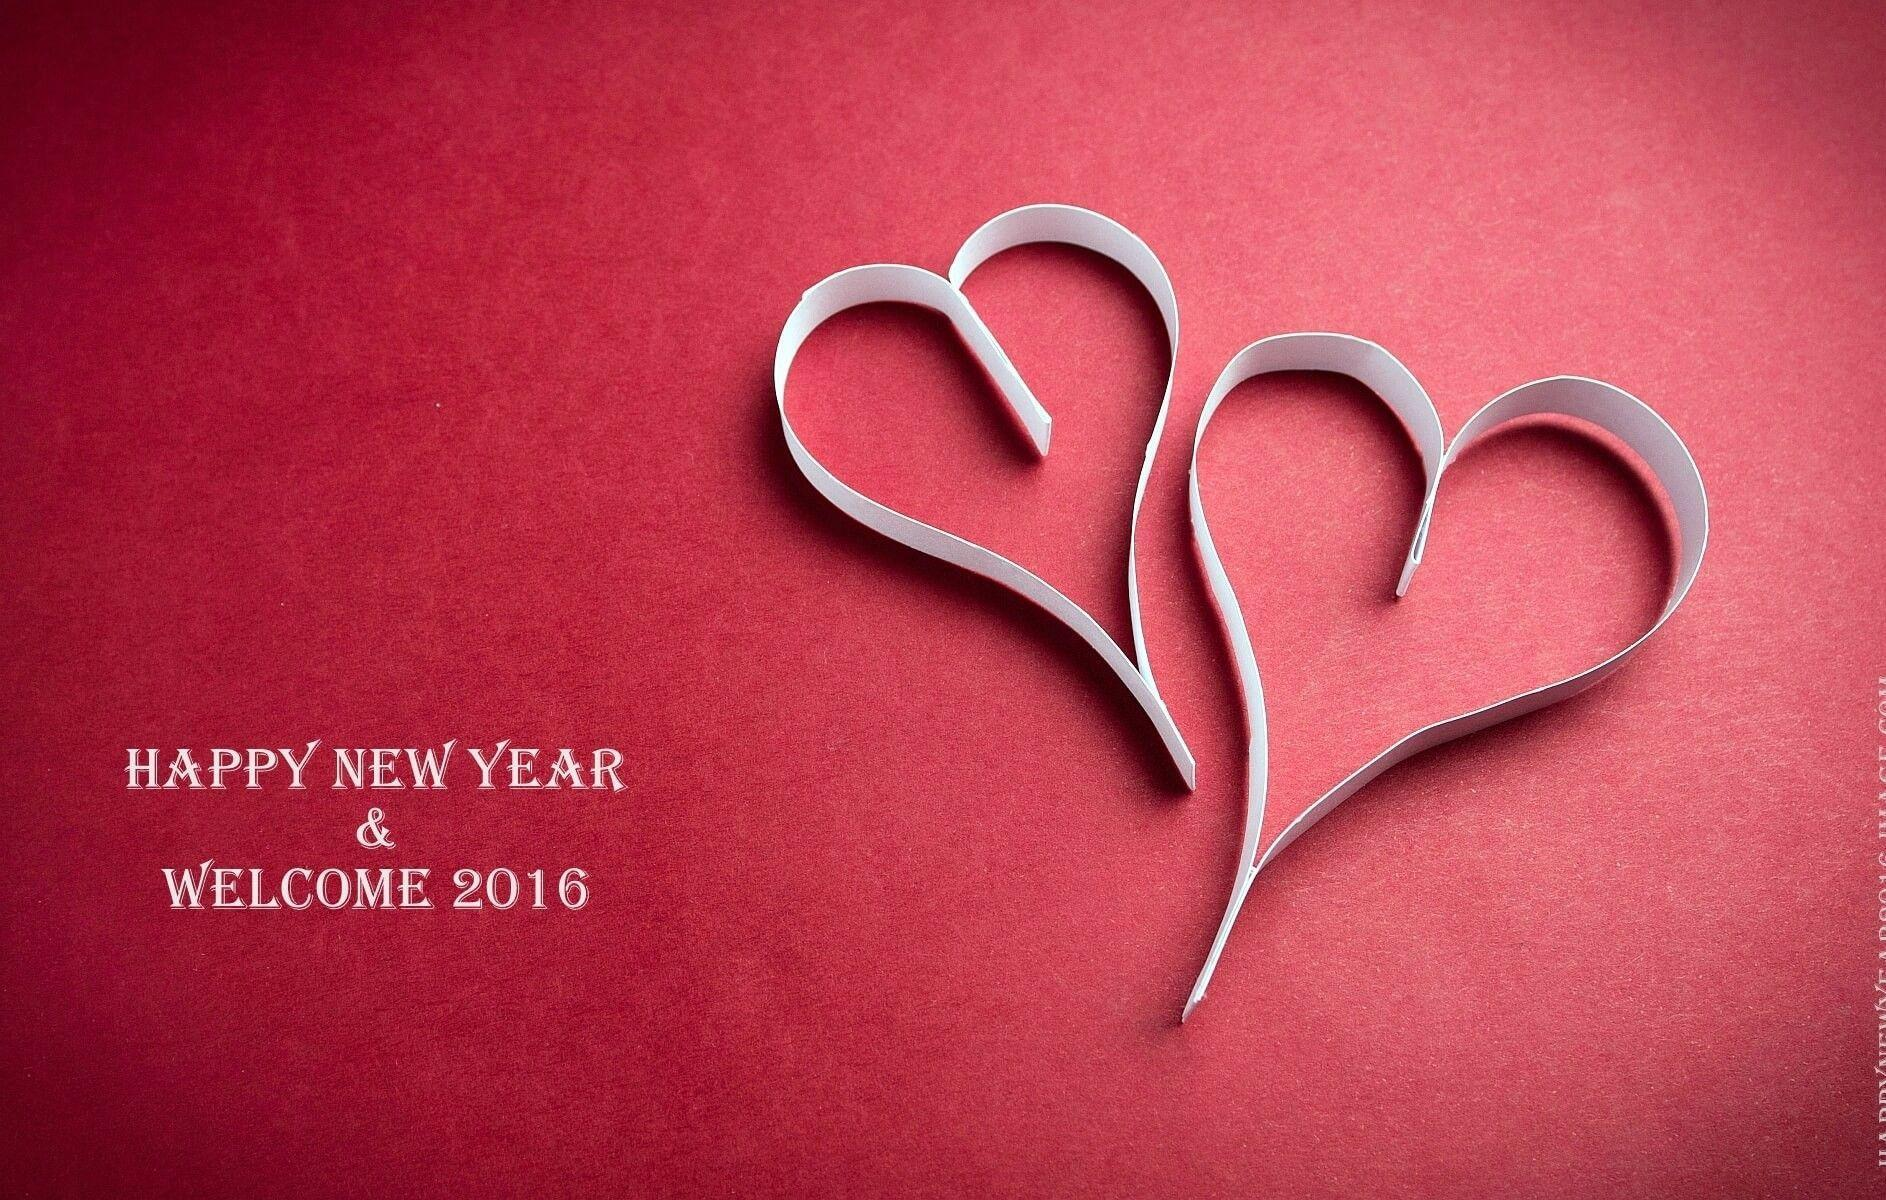 sweet happy new year love couple photos with romantic greetings